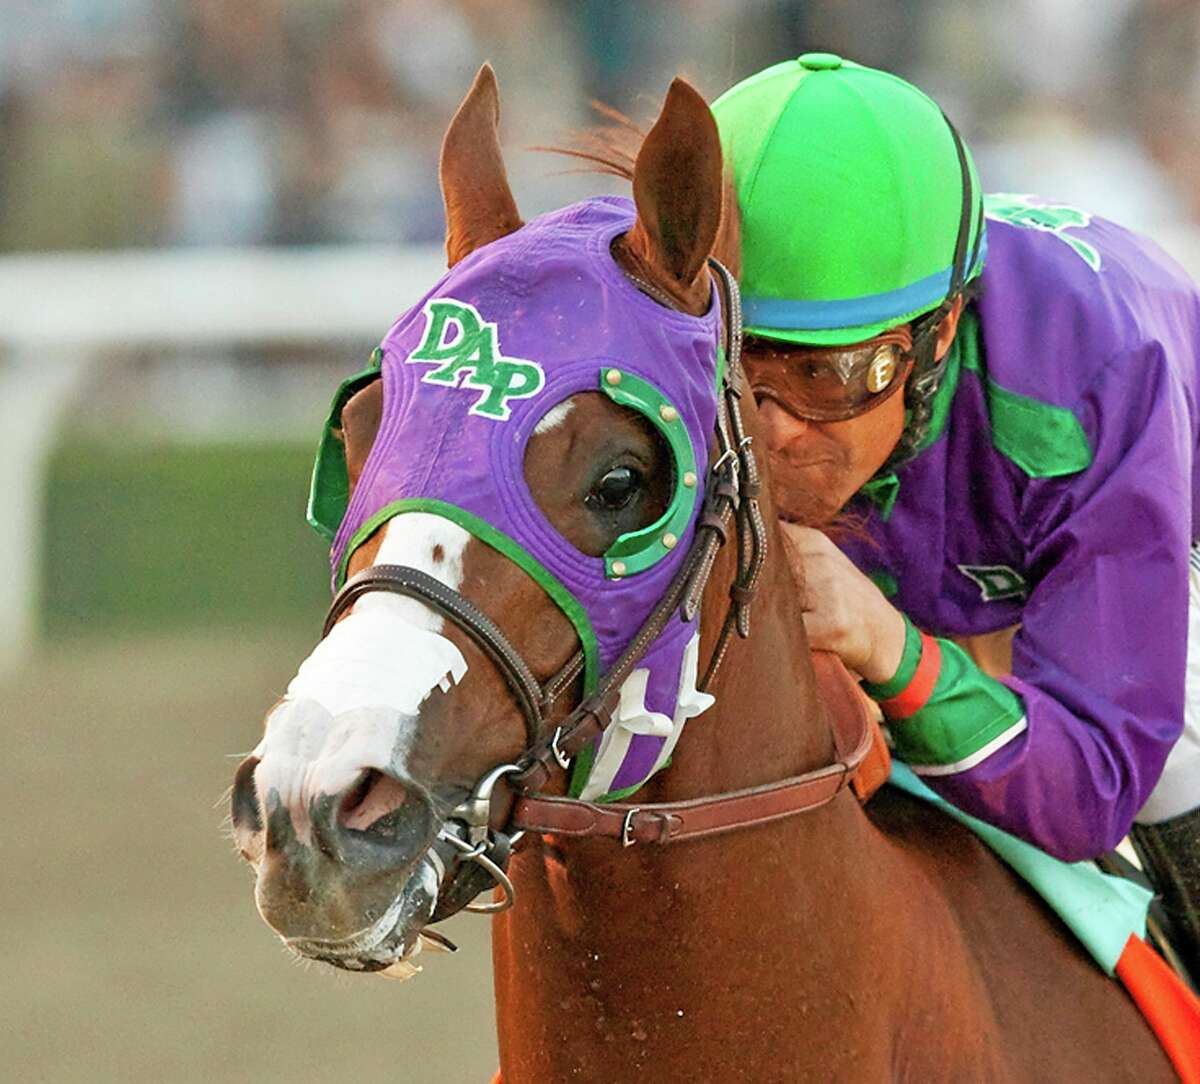 California Chrome might abandon his Triple Crown bid if New York officials do not allow the colt to wear a nasal strip in the Belmont Stakes. Trainer Art Sherman made no threats about the Kentucky Derby and Preakness winner passing on a chance to become horse racing's 12th Triple Crown winner, but he suggested it was a possibility.